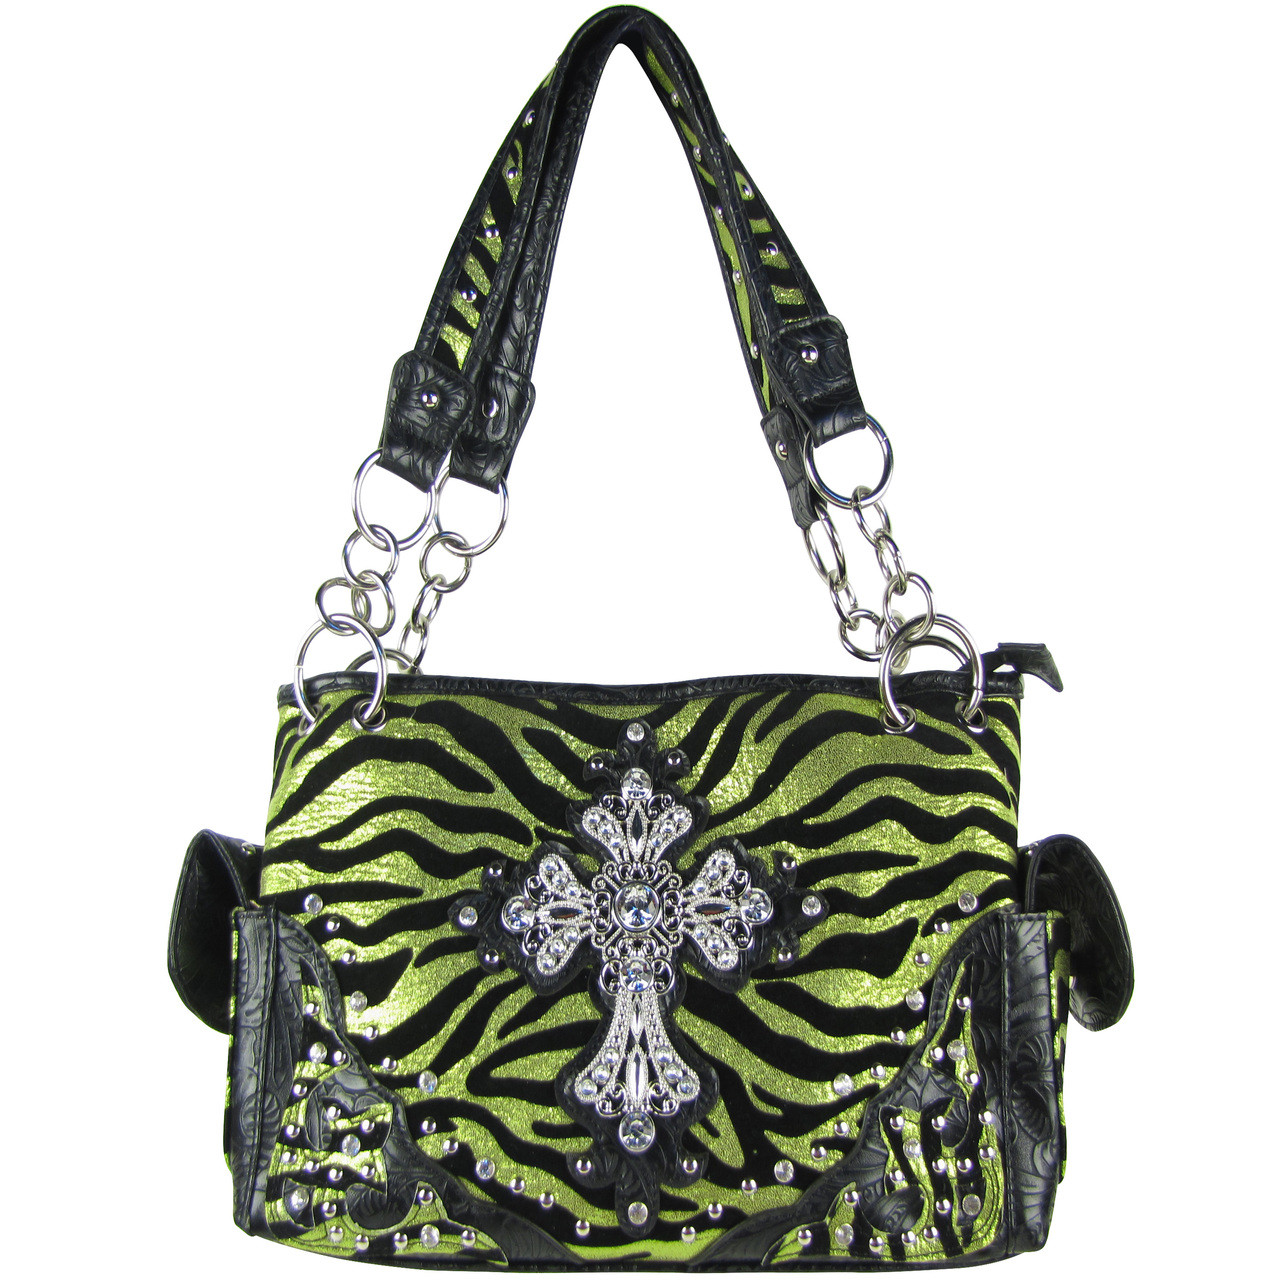 GREEN ZEBRA RHINESTONE CROSS SHOULDER HANDBAG HB1-FZLCR-3GRN